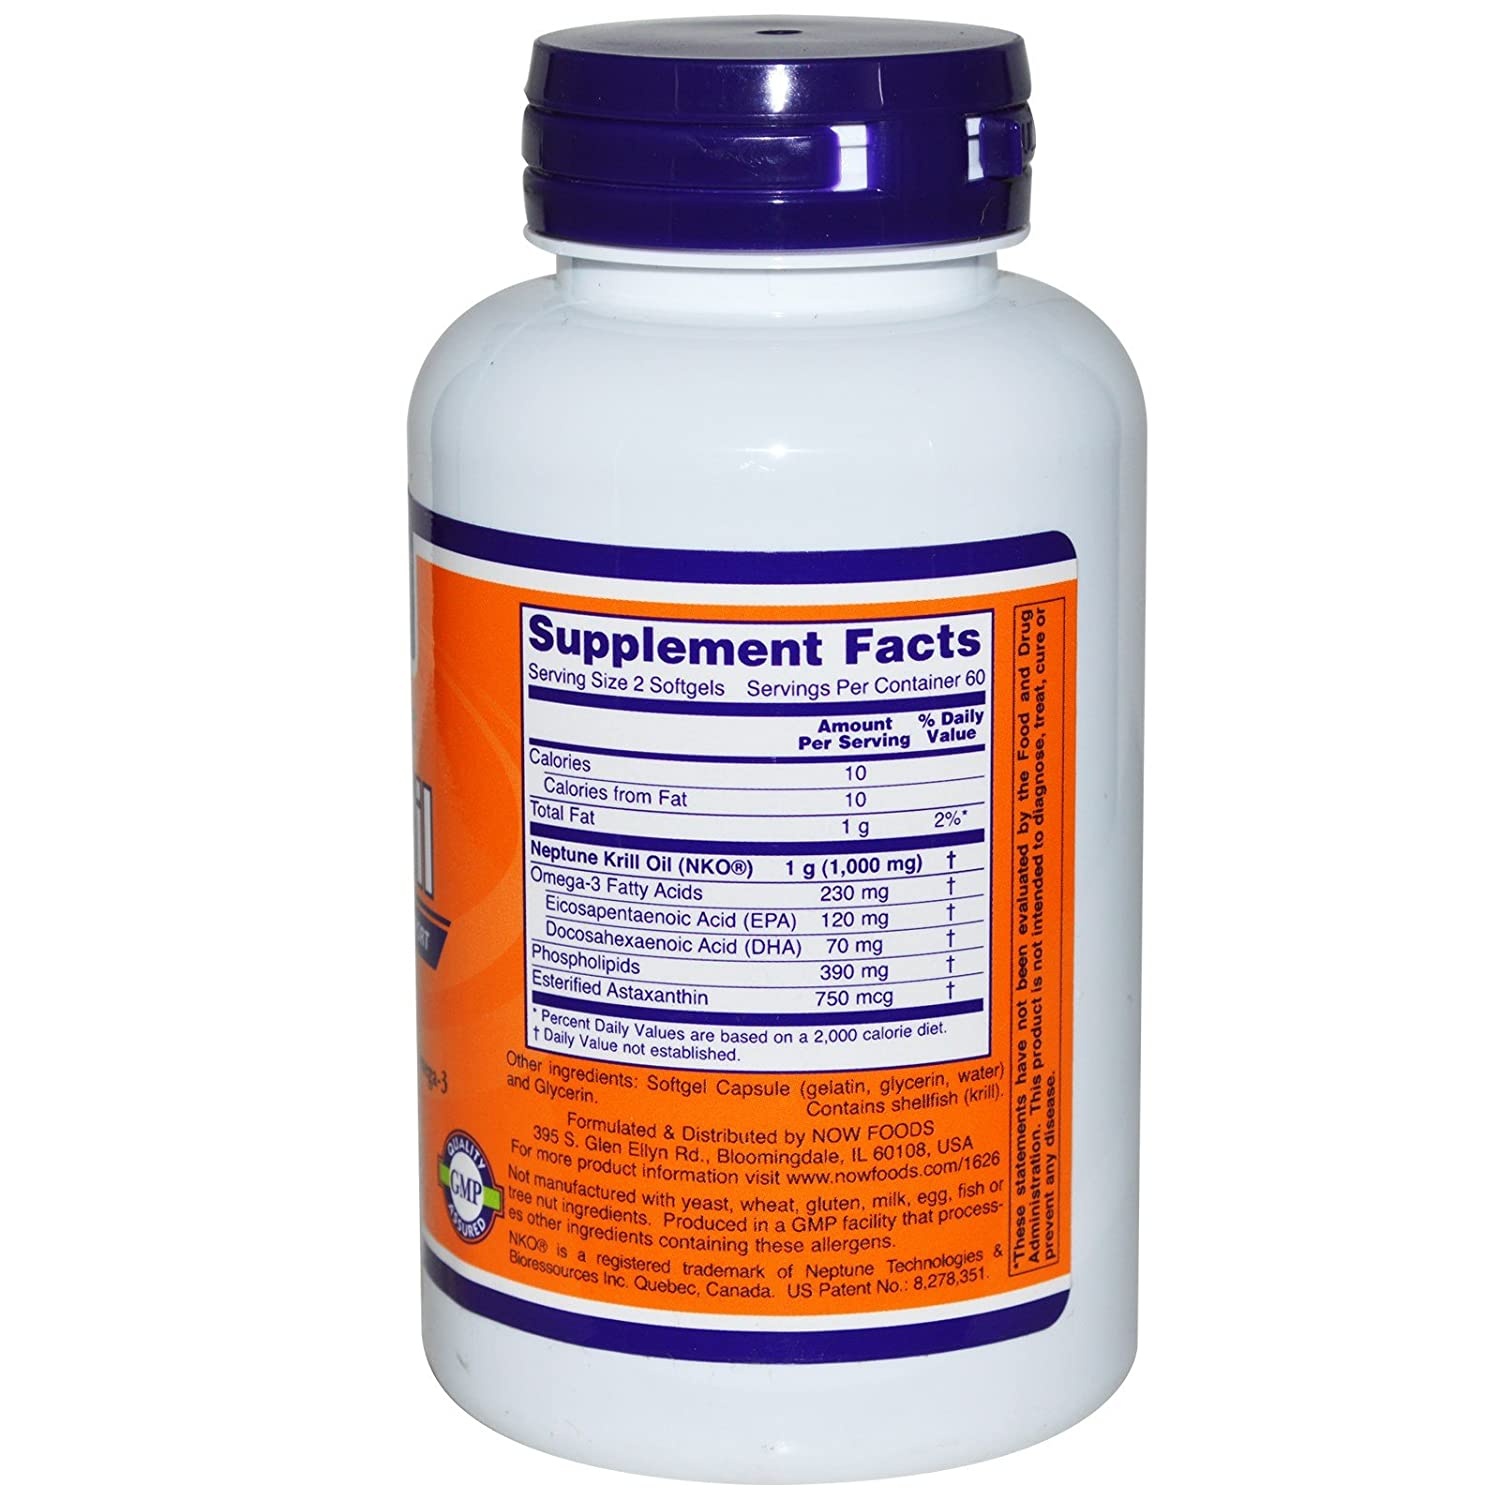 Now Foods Neptune Krill Softgels Image 2